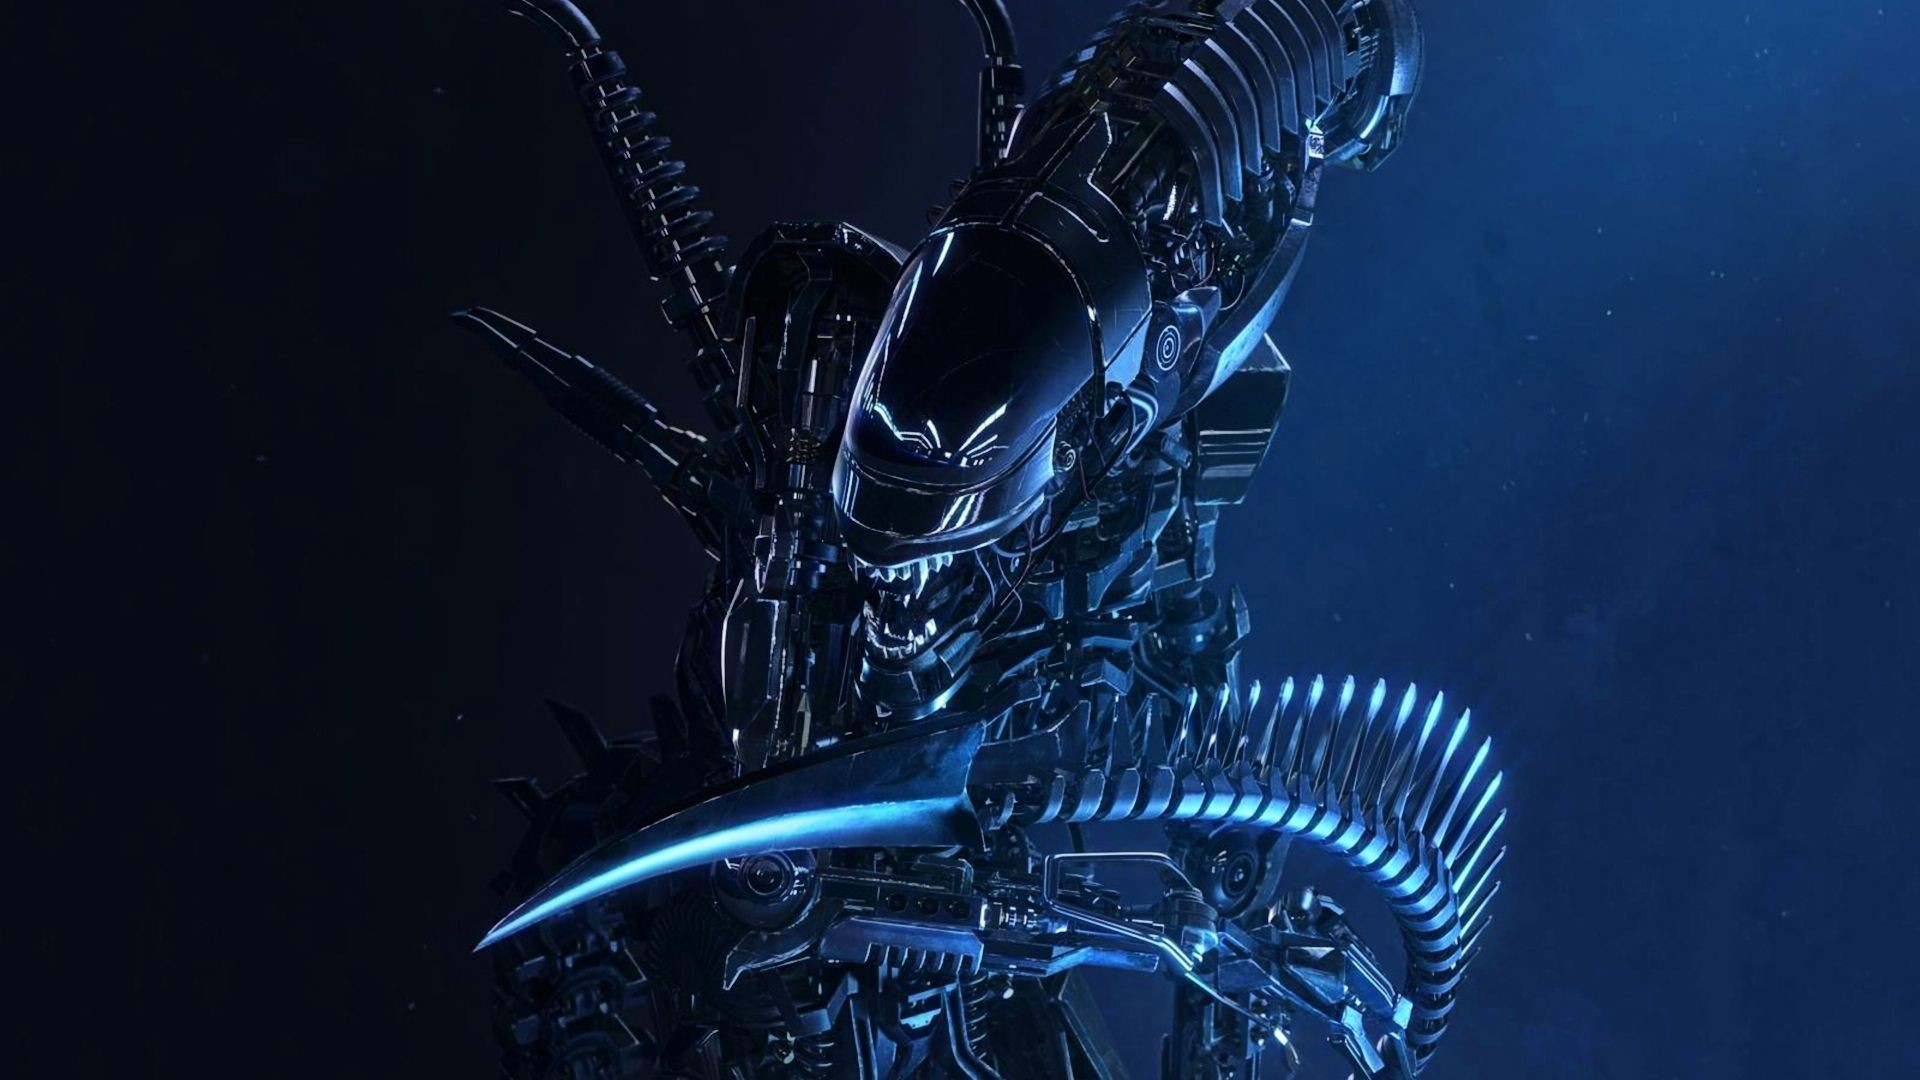 1920x1080 Aliens Wallpapers, HD Quality Aliens Wallpapers for Free, Pictures